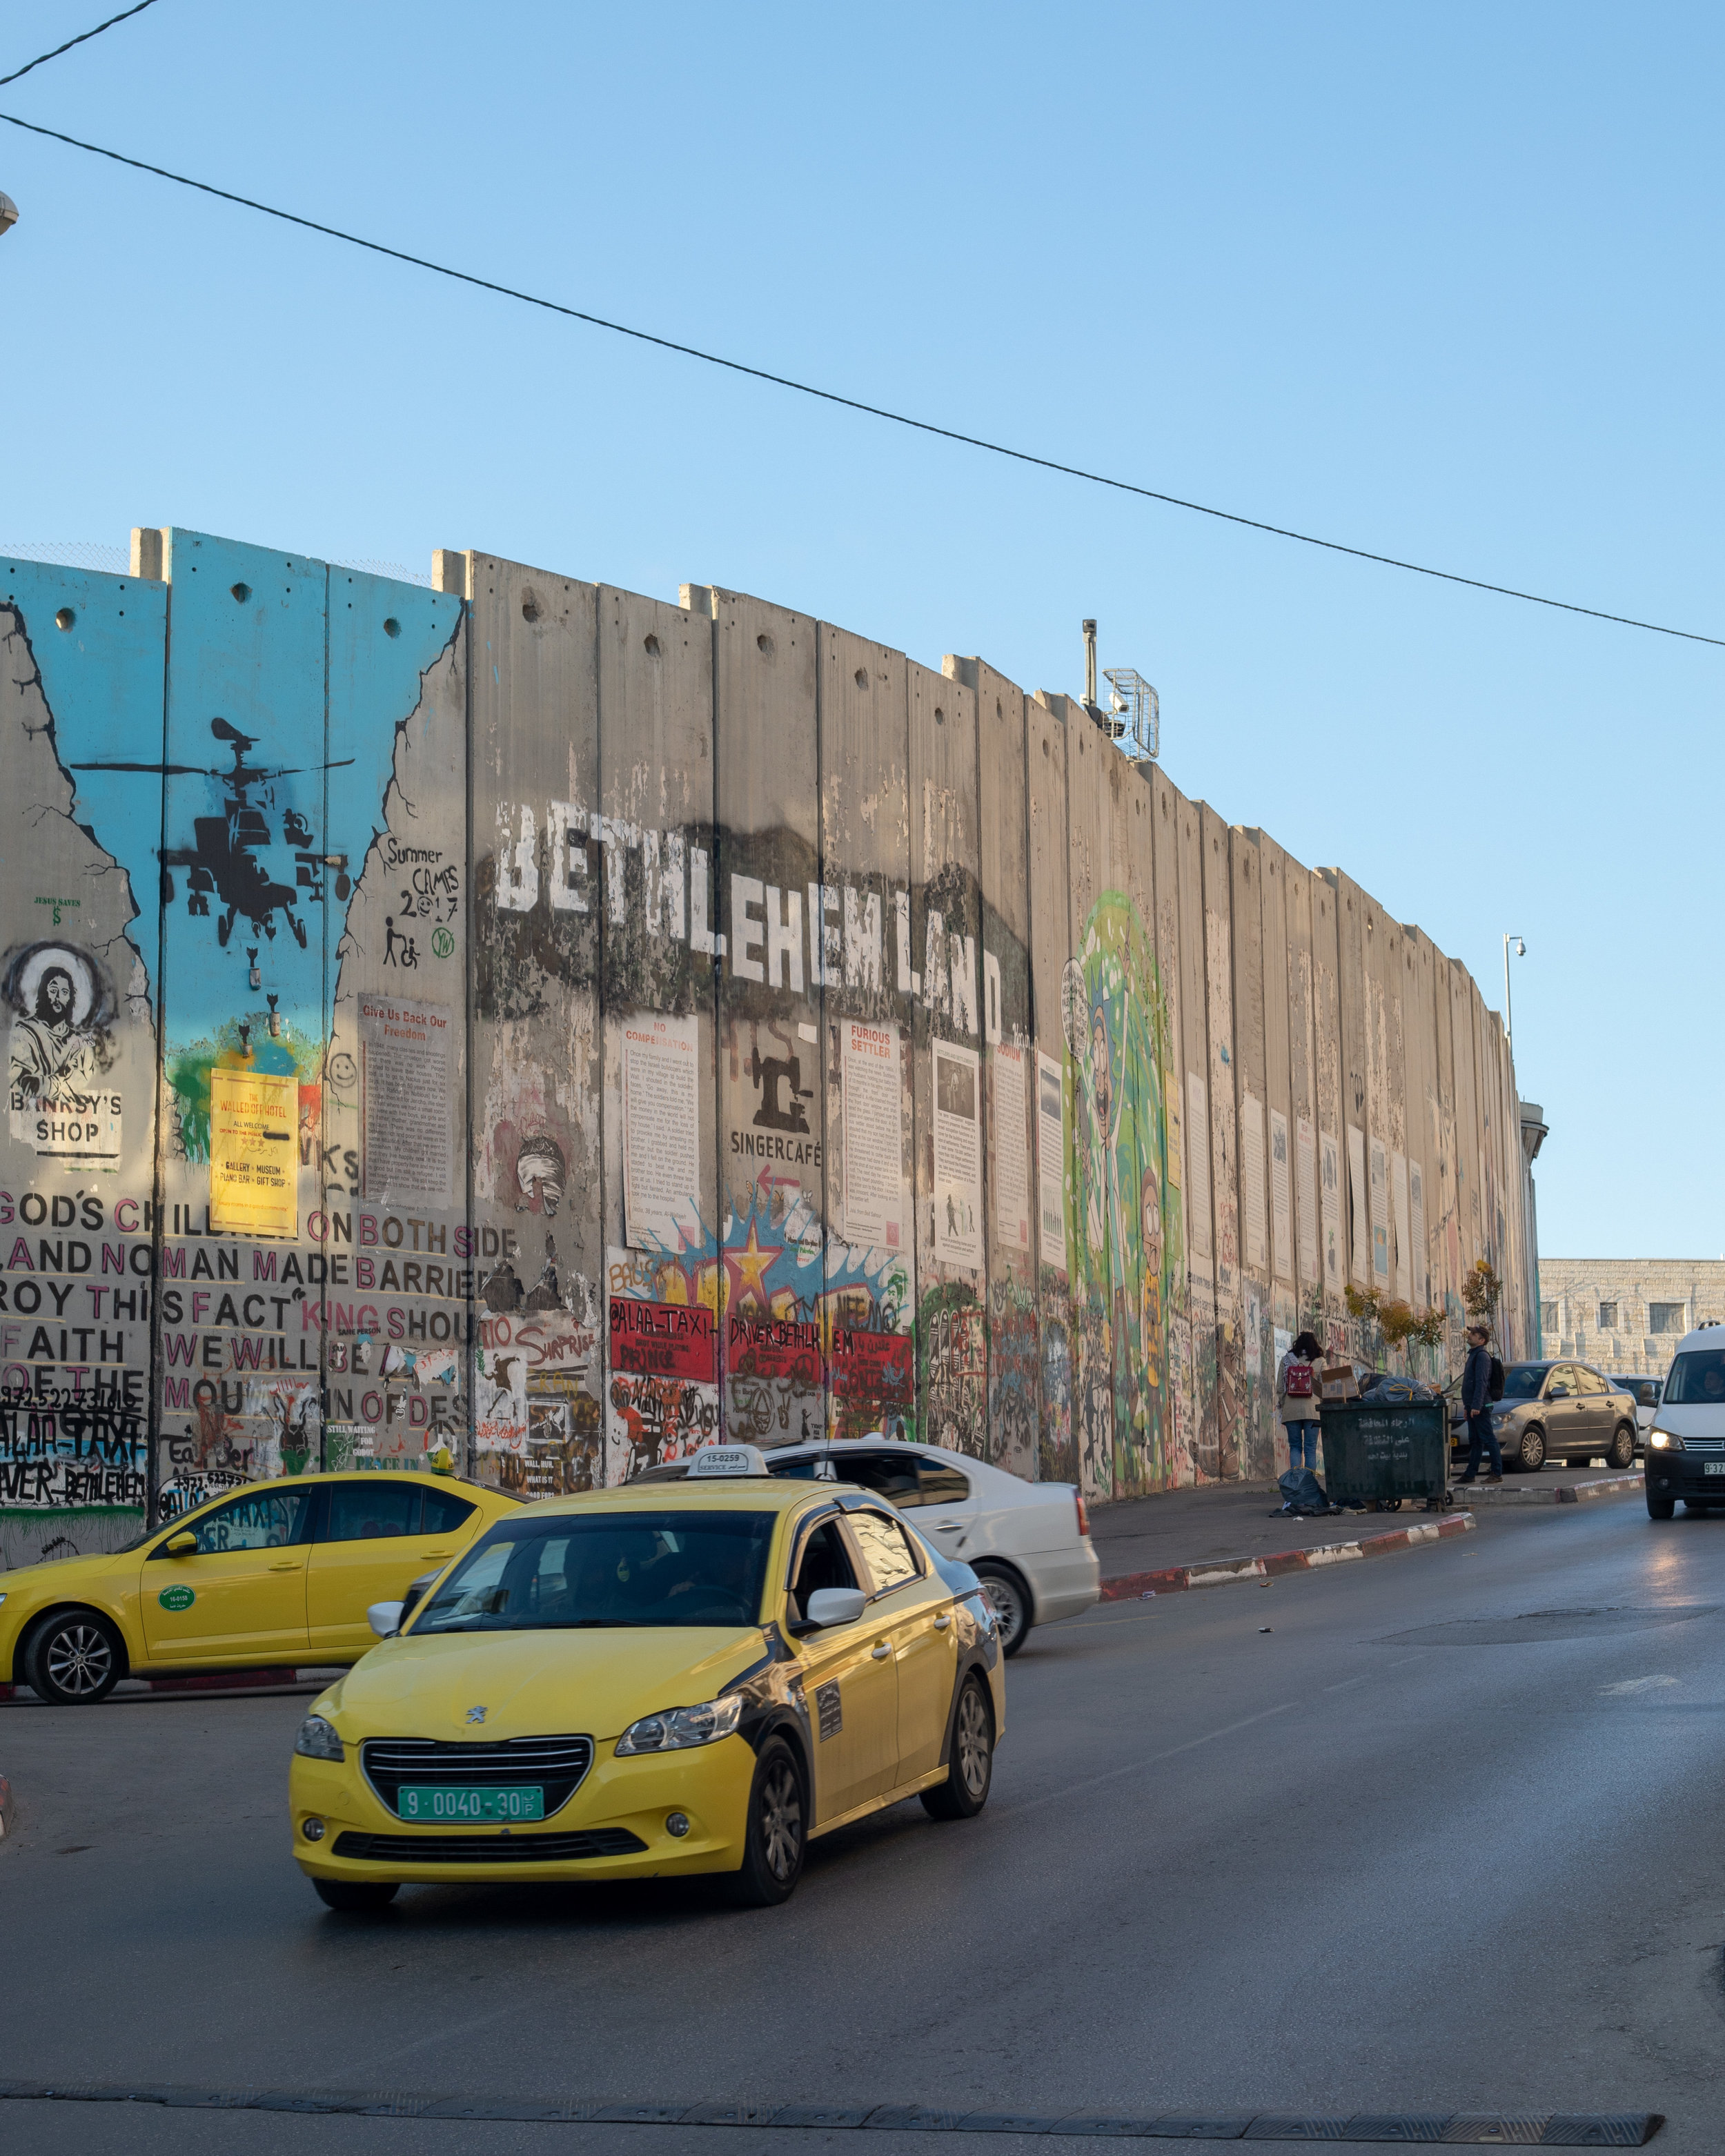 The wall in Bethlehem